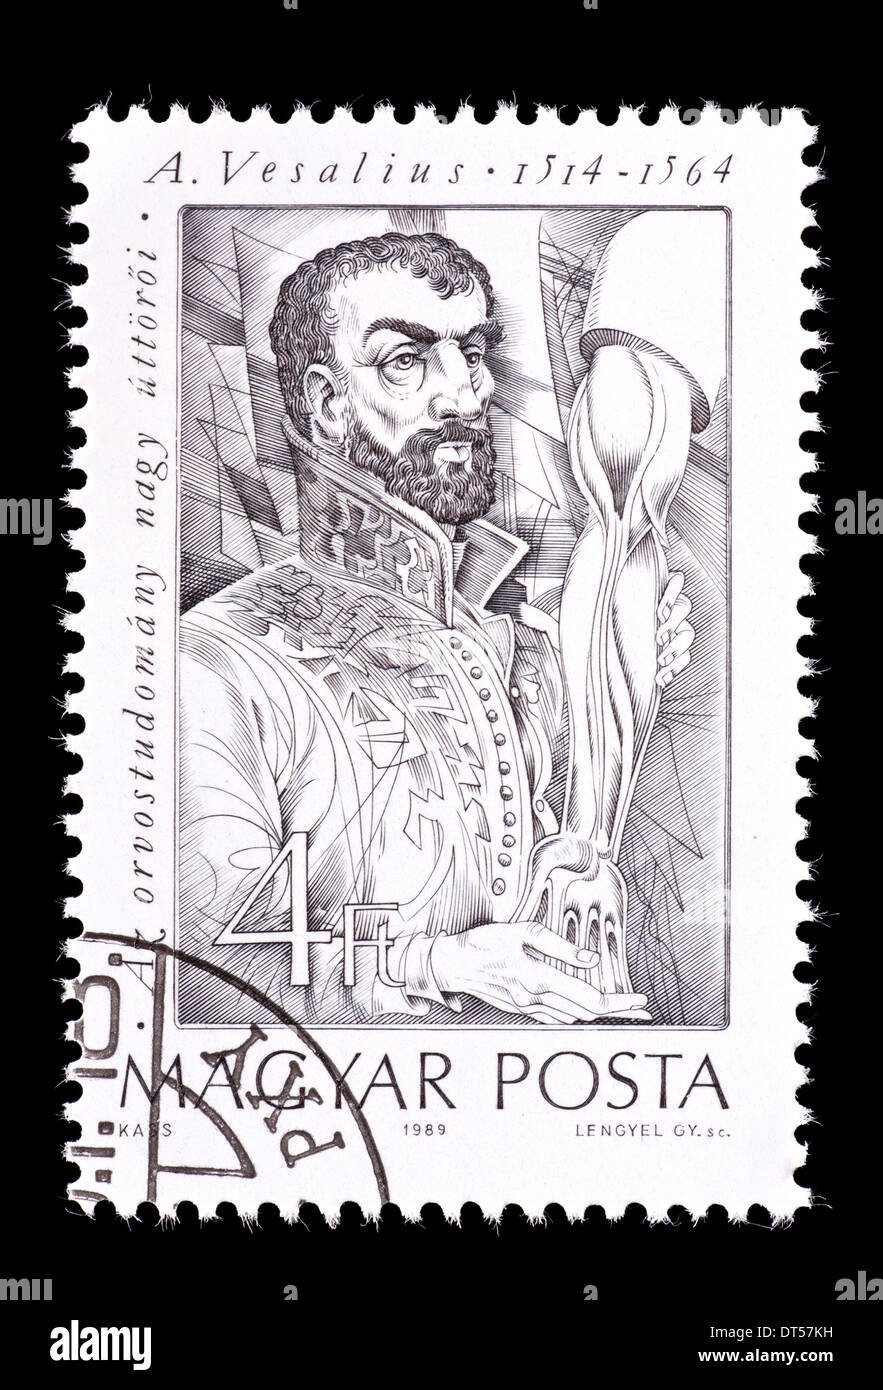 Postage stamp from Hungary depicting Andreas Vesalius, Belgian anatomist. - Stock Image